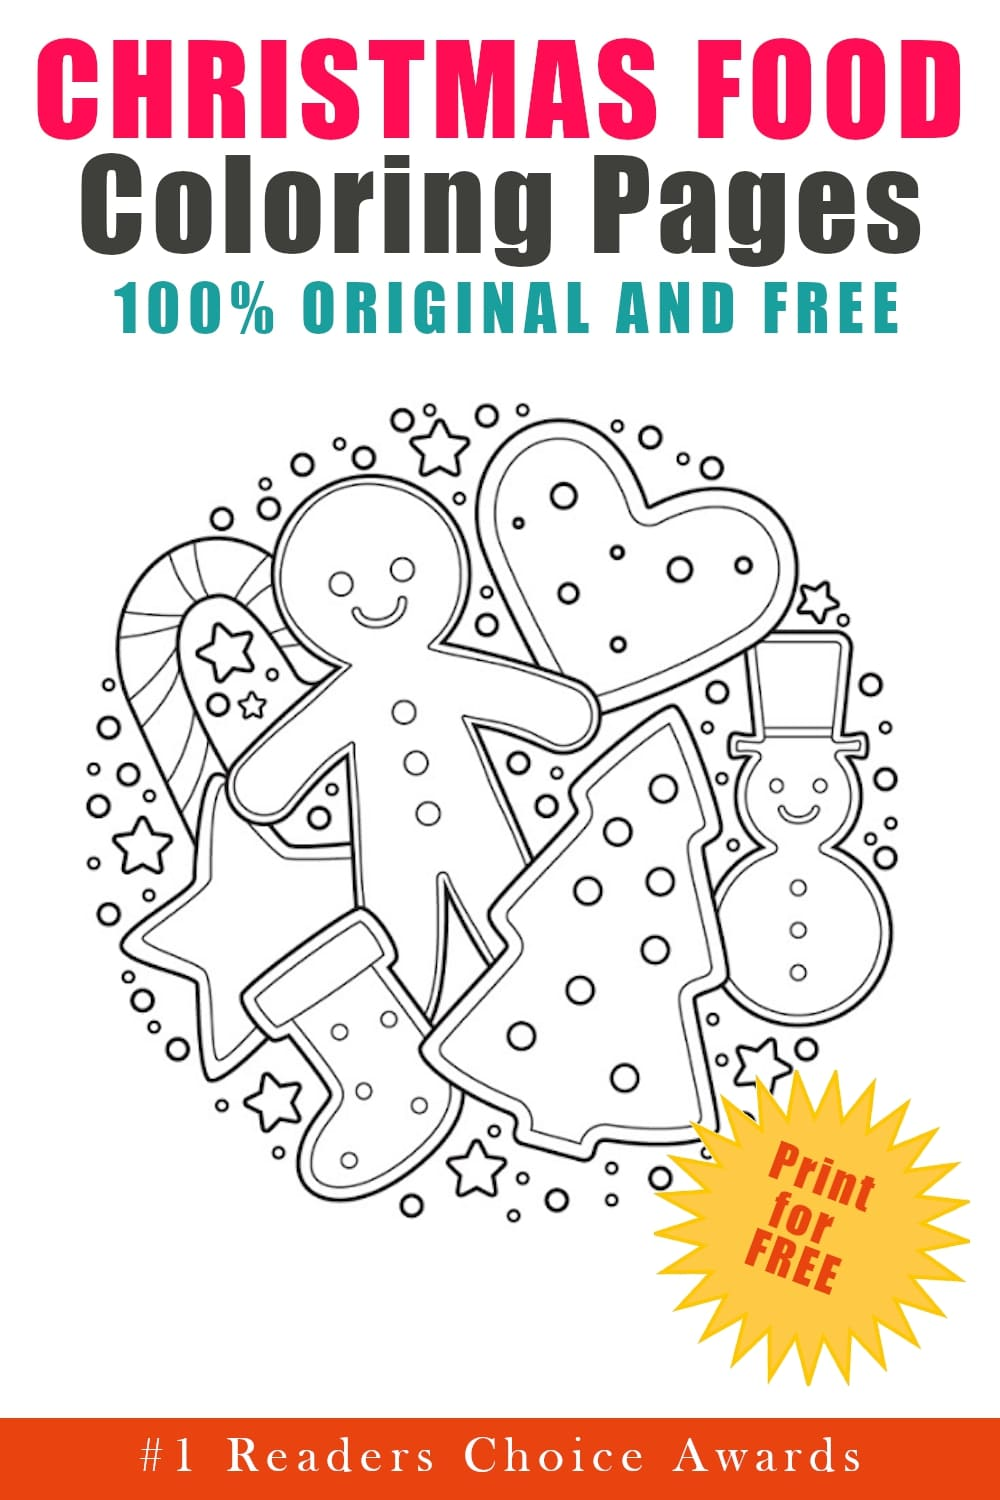 original and free christmas food coloring pages